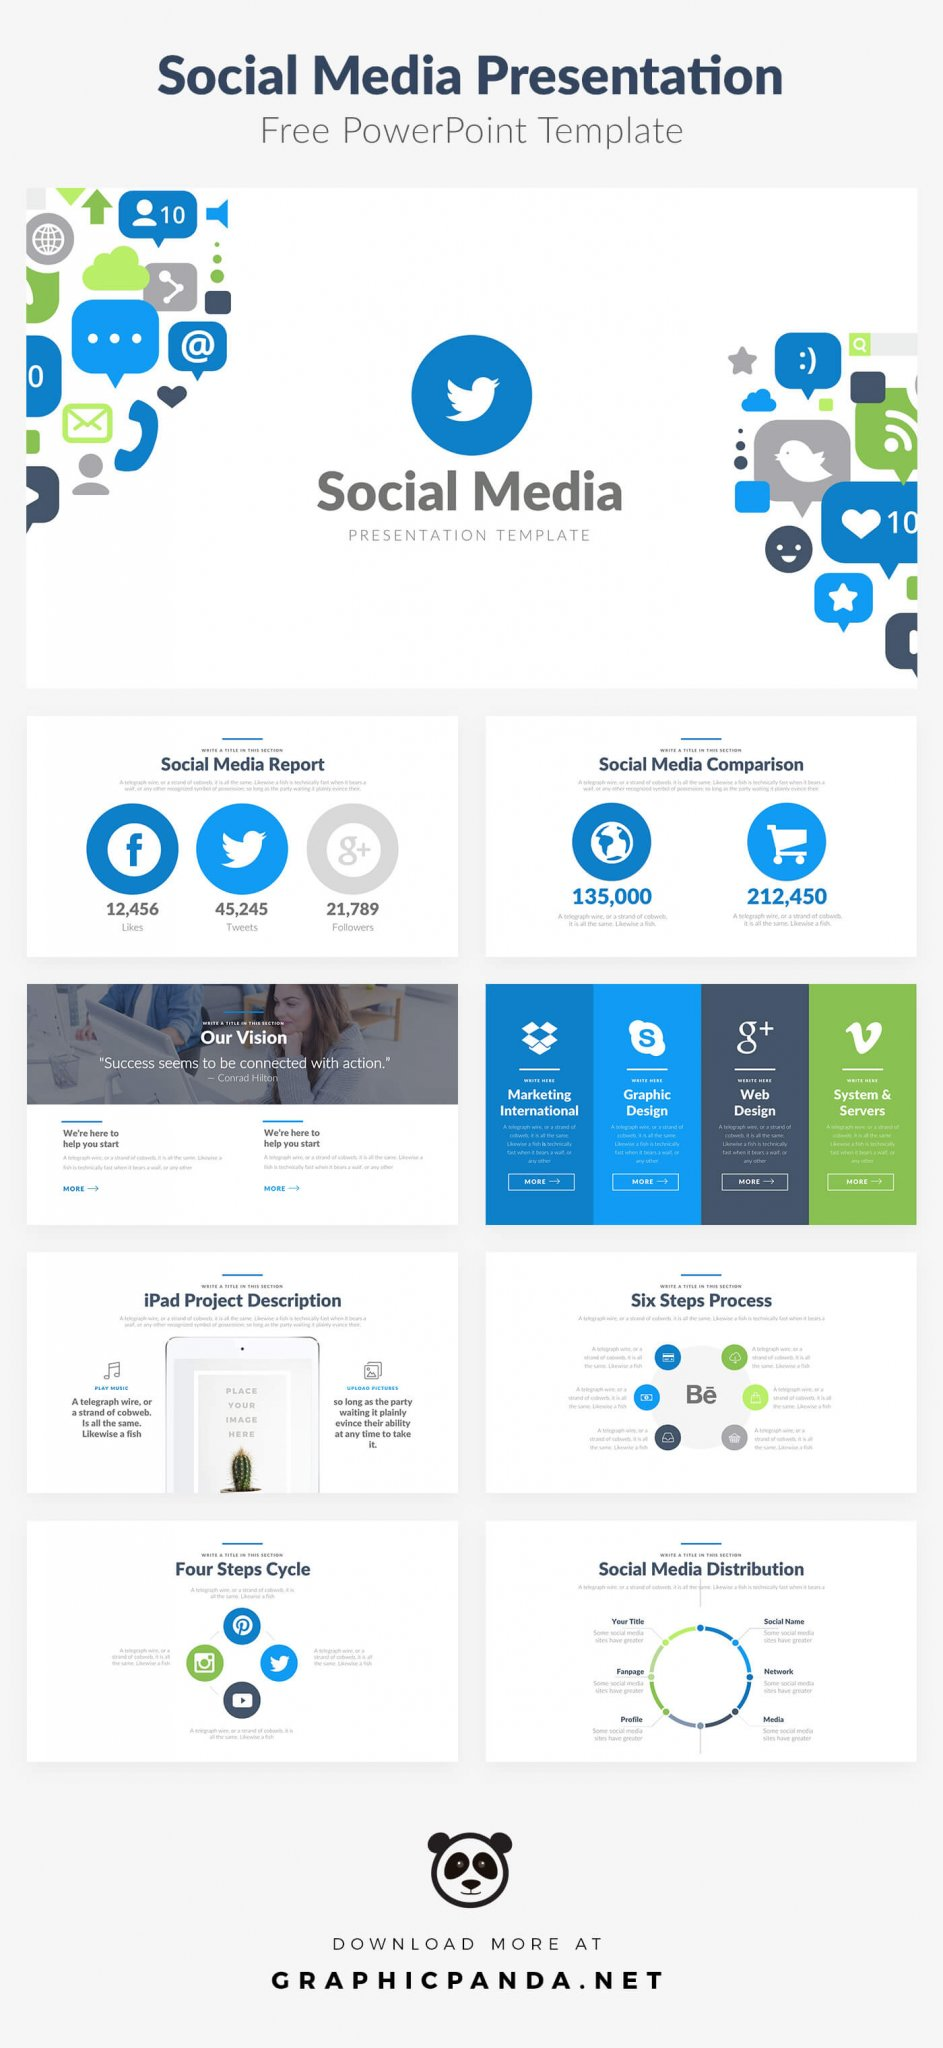 social media templates free - 10 free social media slides templates for microsoft powerpoint